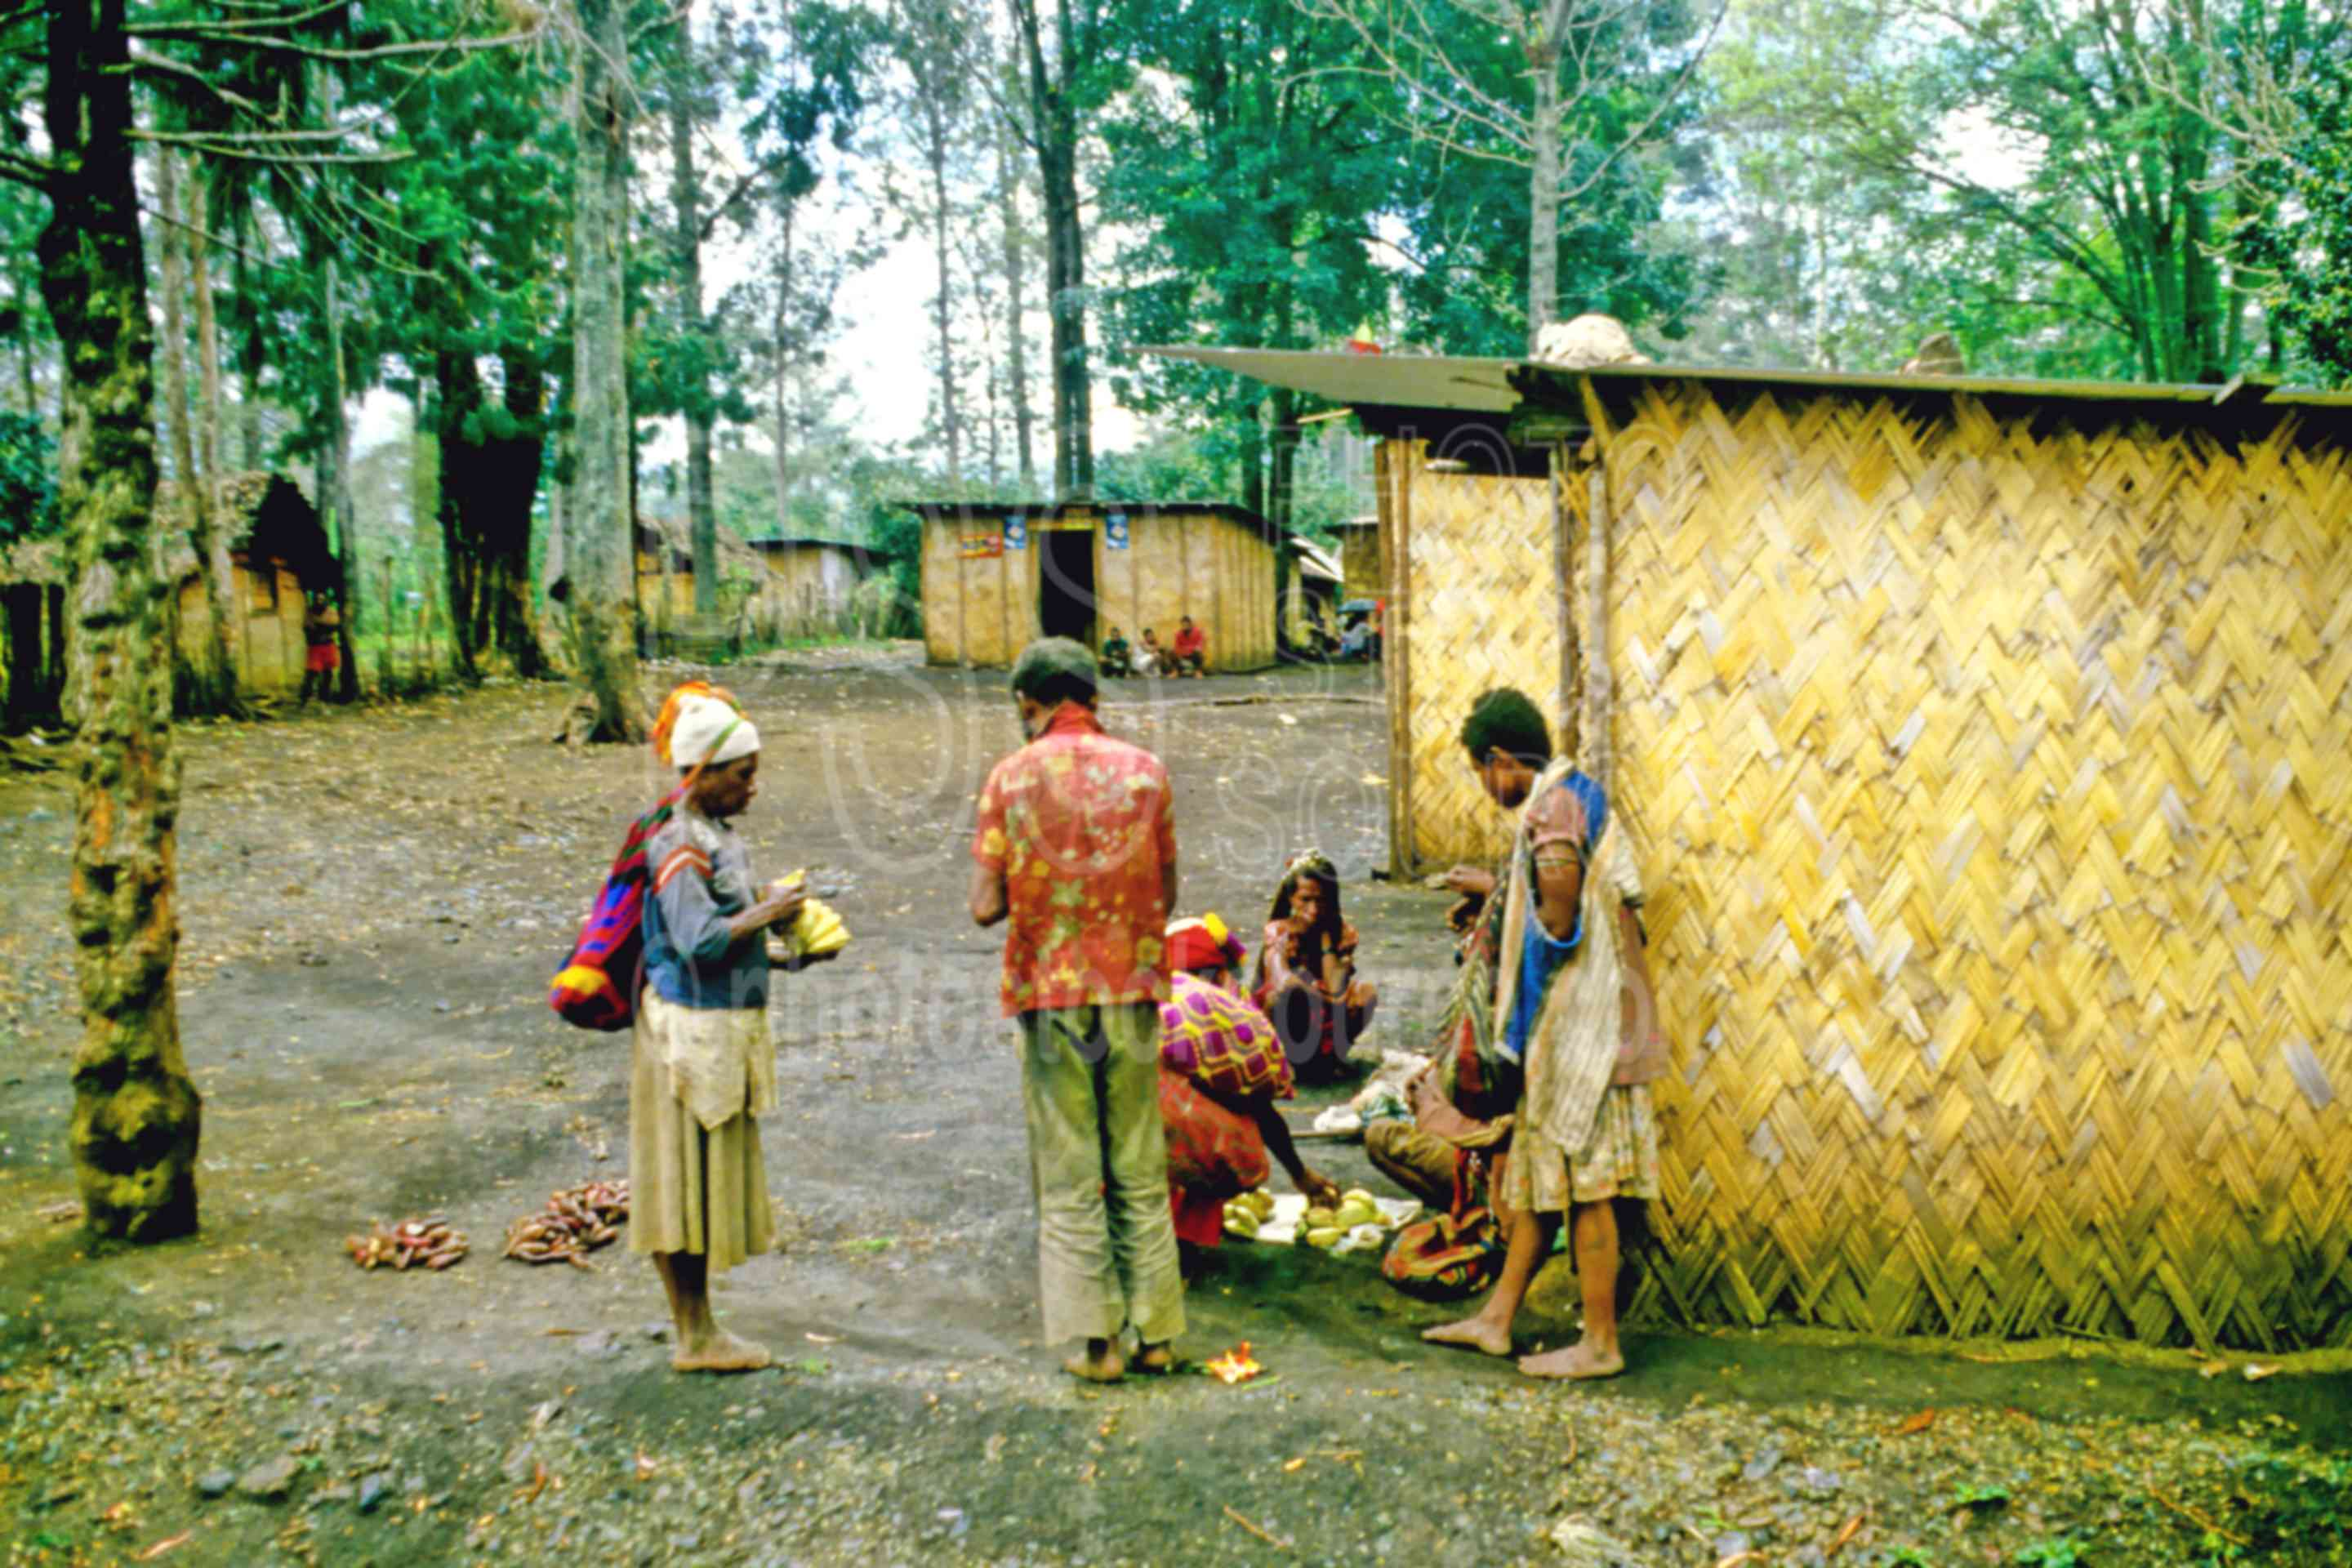 People Visiting,village,family,house,hut,grass,primitive